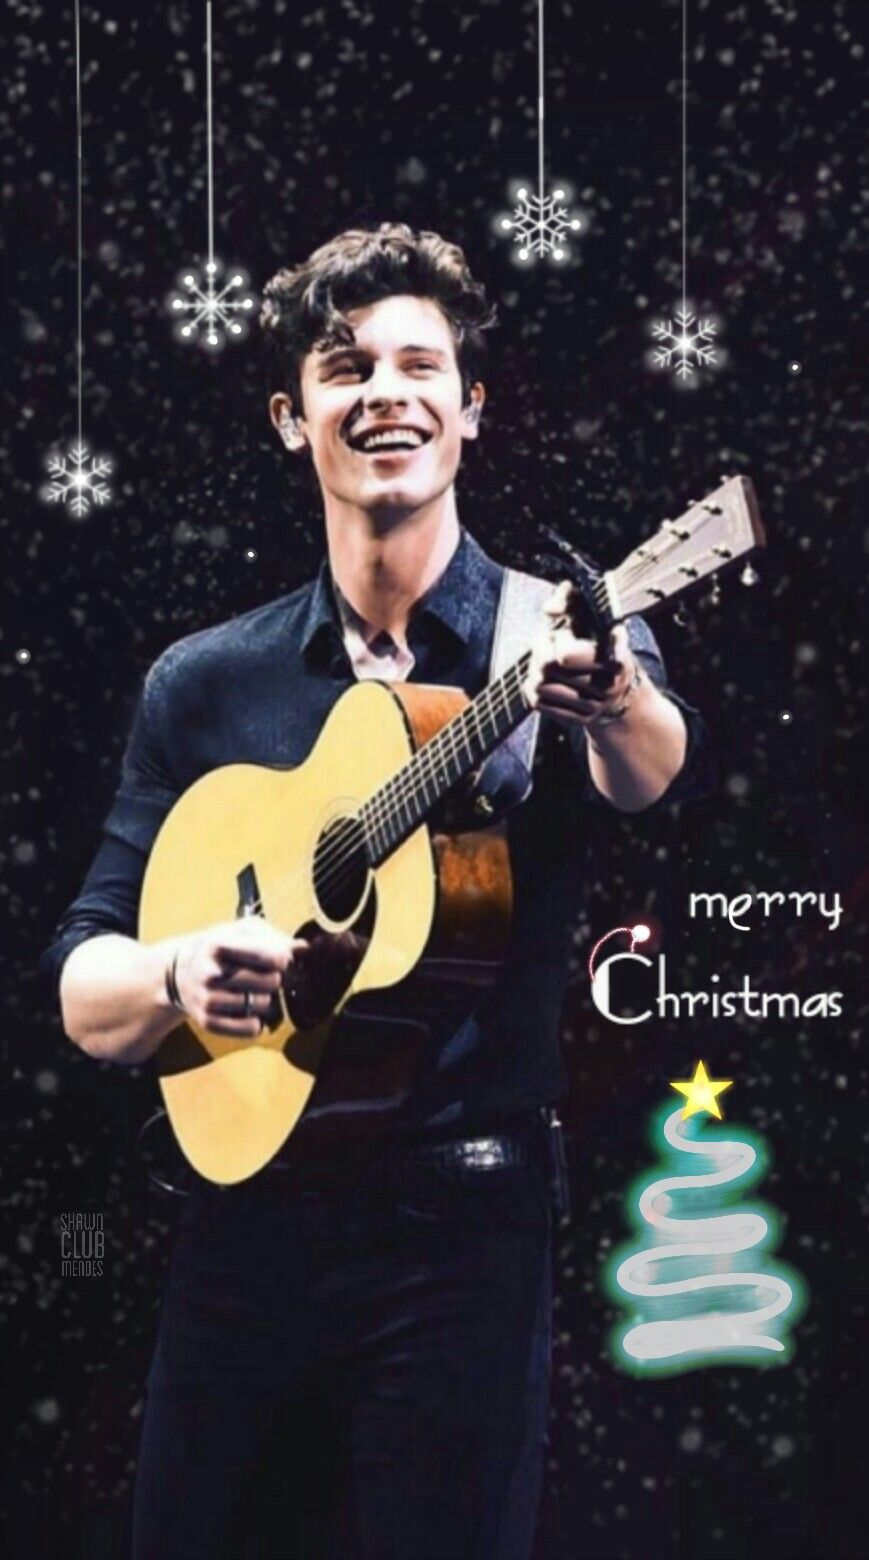 Shawn Mendes Wallpaper Merry Christmas Shawnmendes Shawnmendesthealbum Thealbum Wallpaper Shawn Mendes Wallpaper Shawn Mendes Shawn Mendes Girlfriend